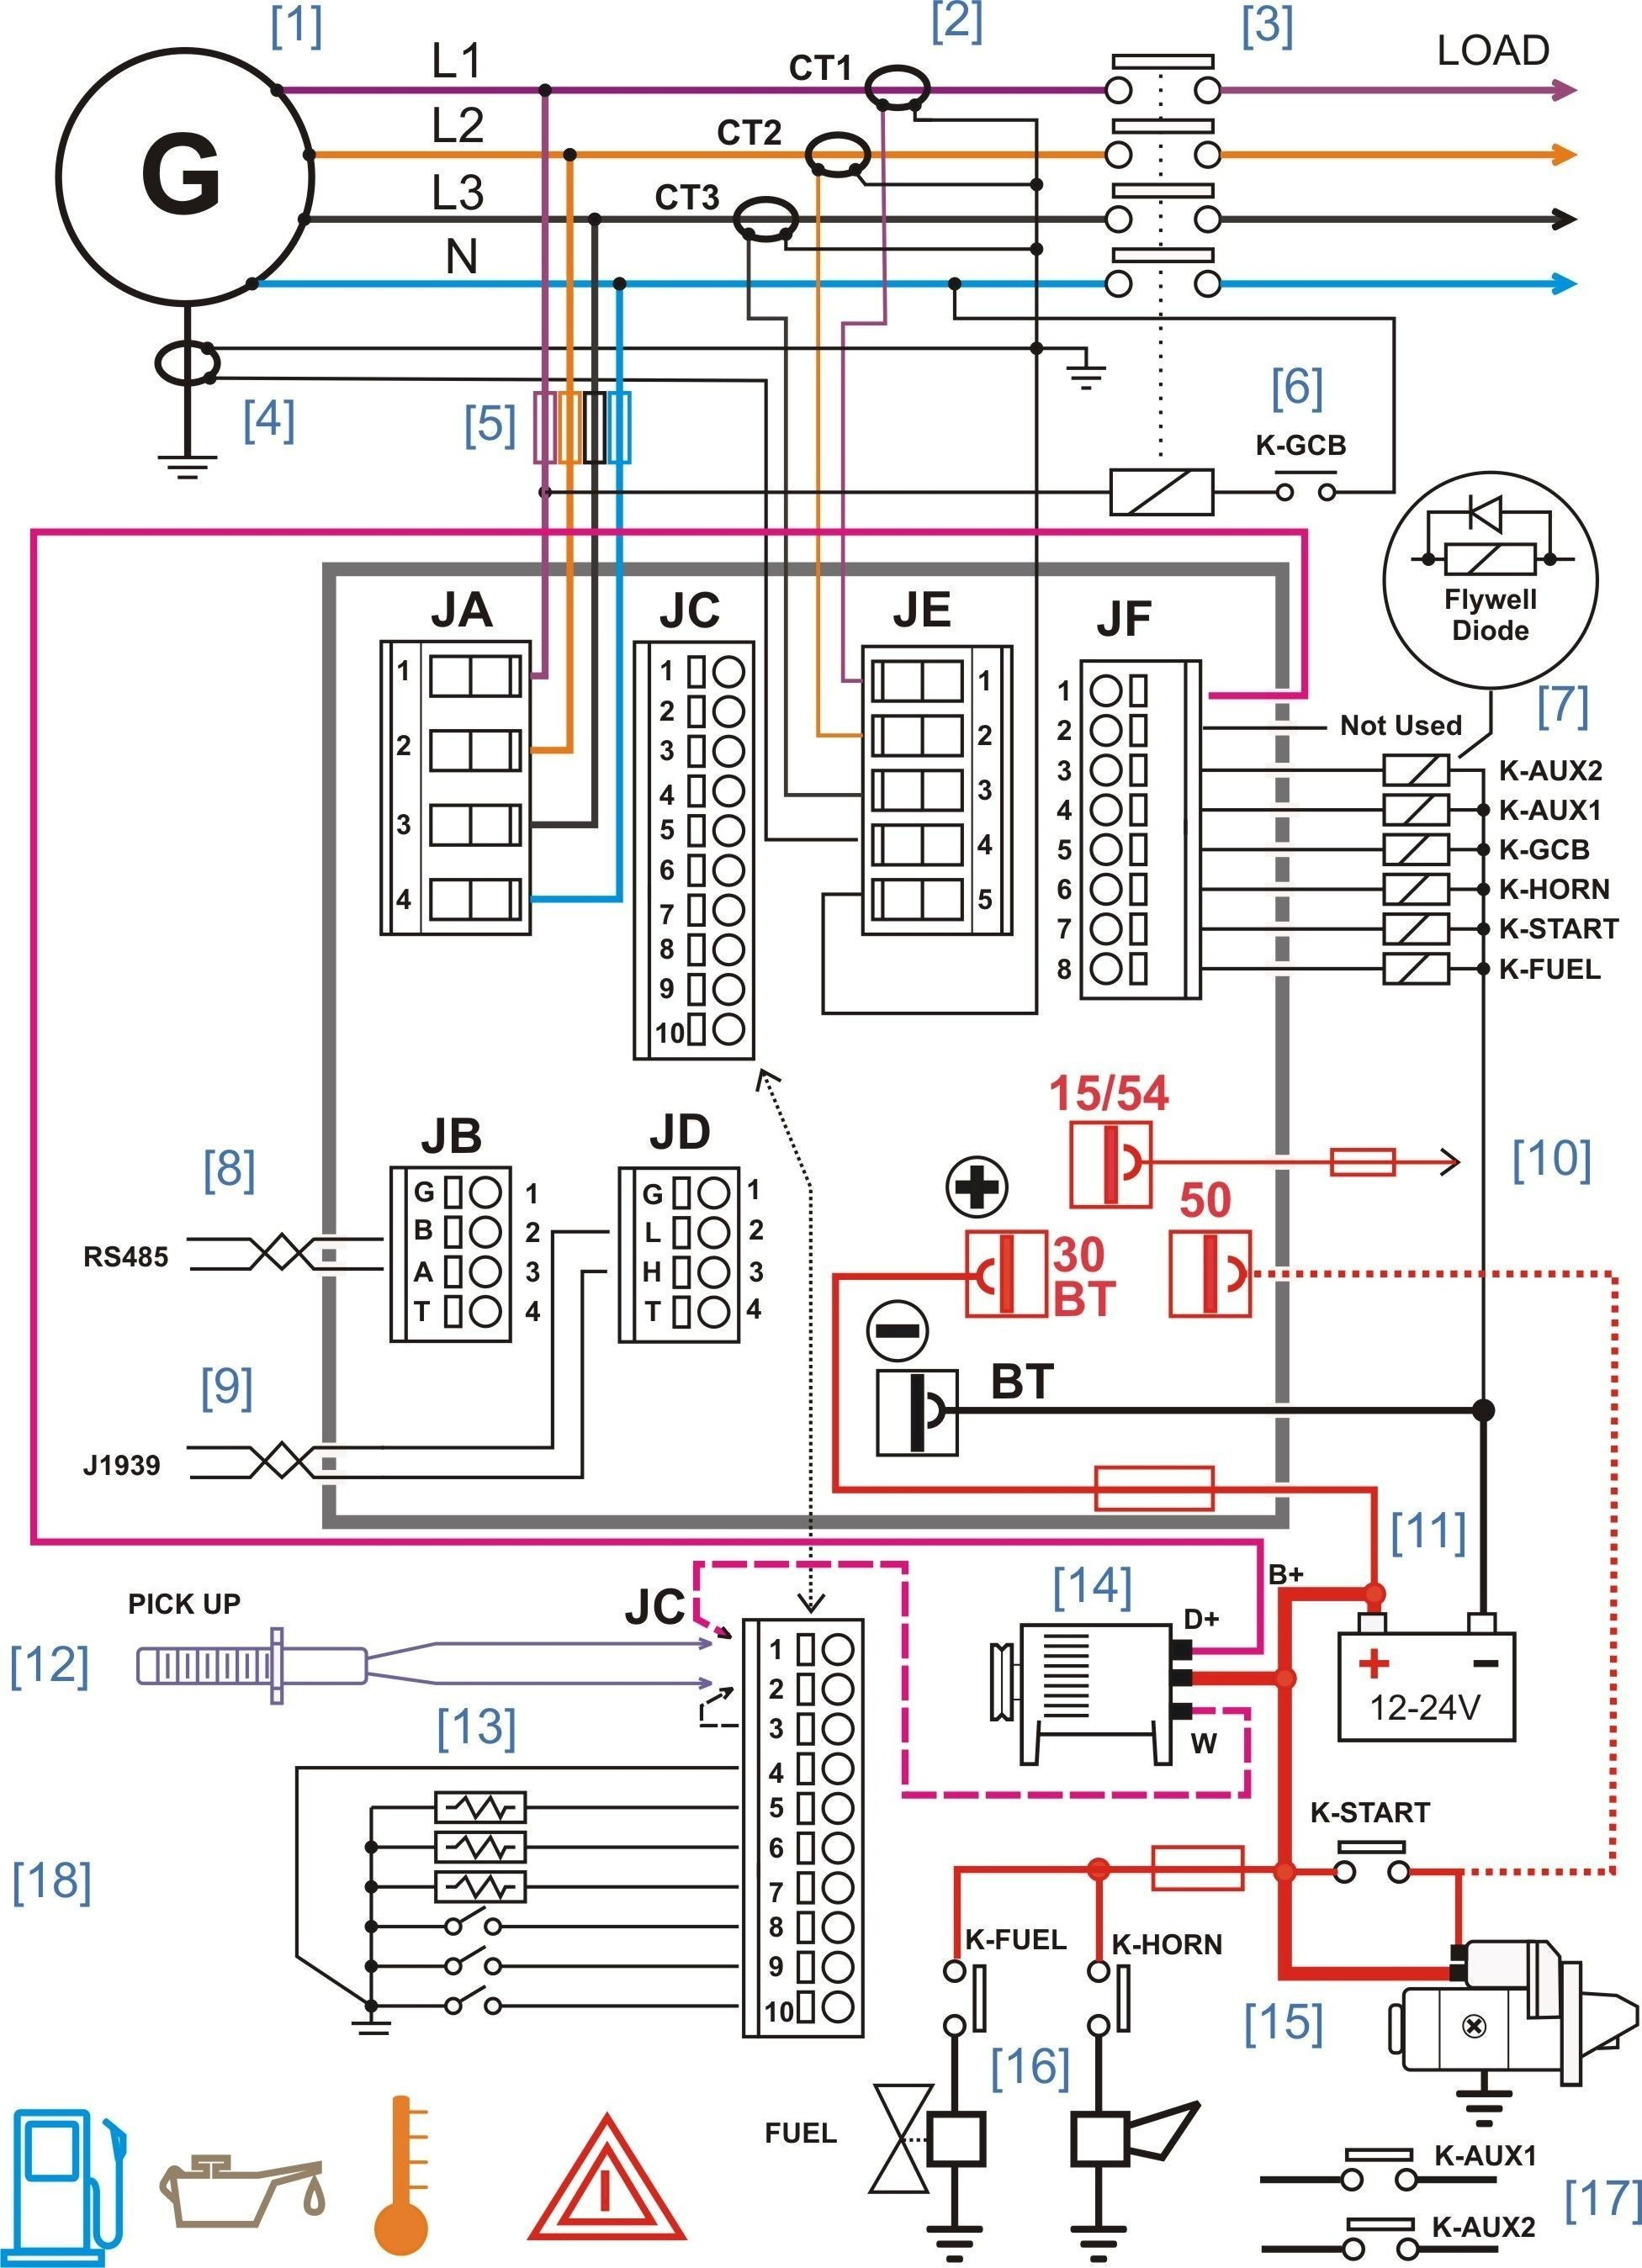 Reliance Transfer Switch Wiring Diagram Home Generator Wiring 30 Amp Detailed Schematic Diagrams Of Reliance Transfer Switch Wiring Diagram